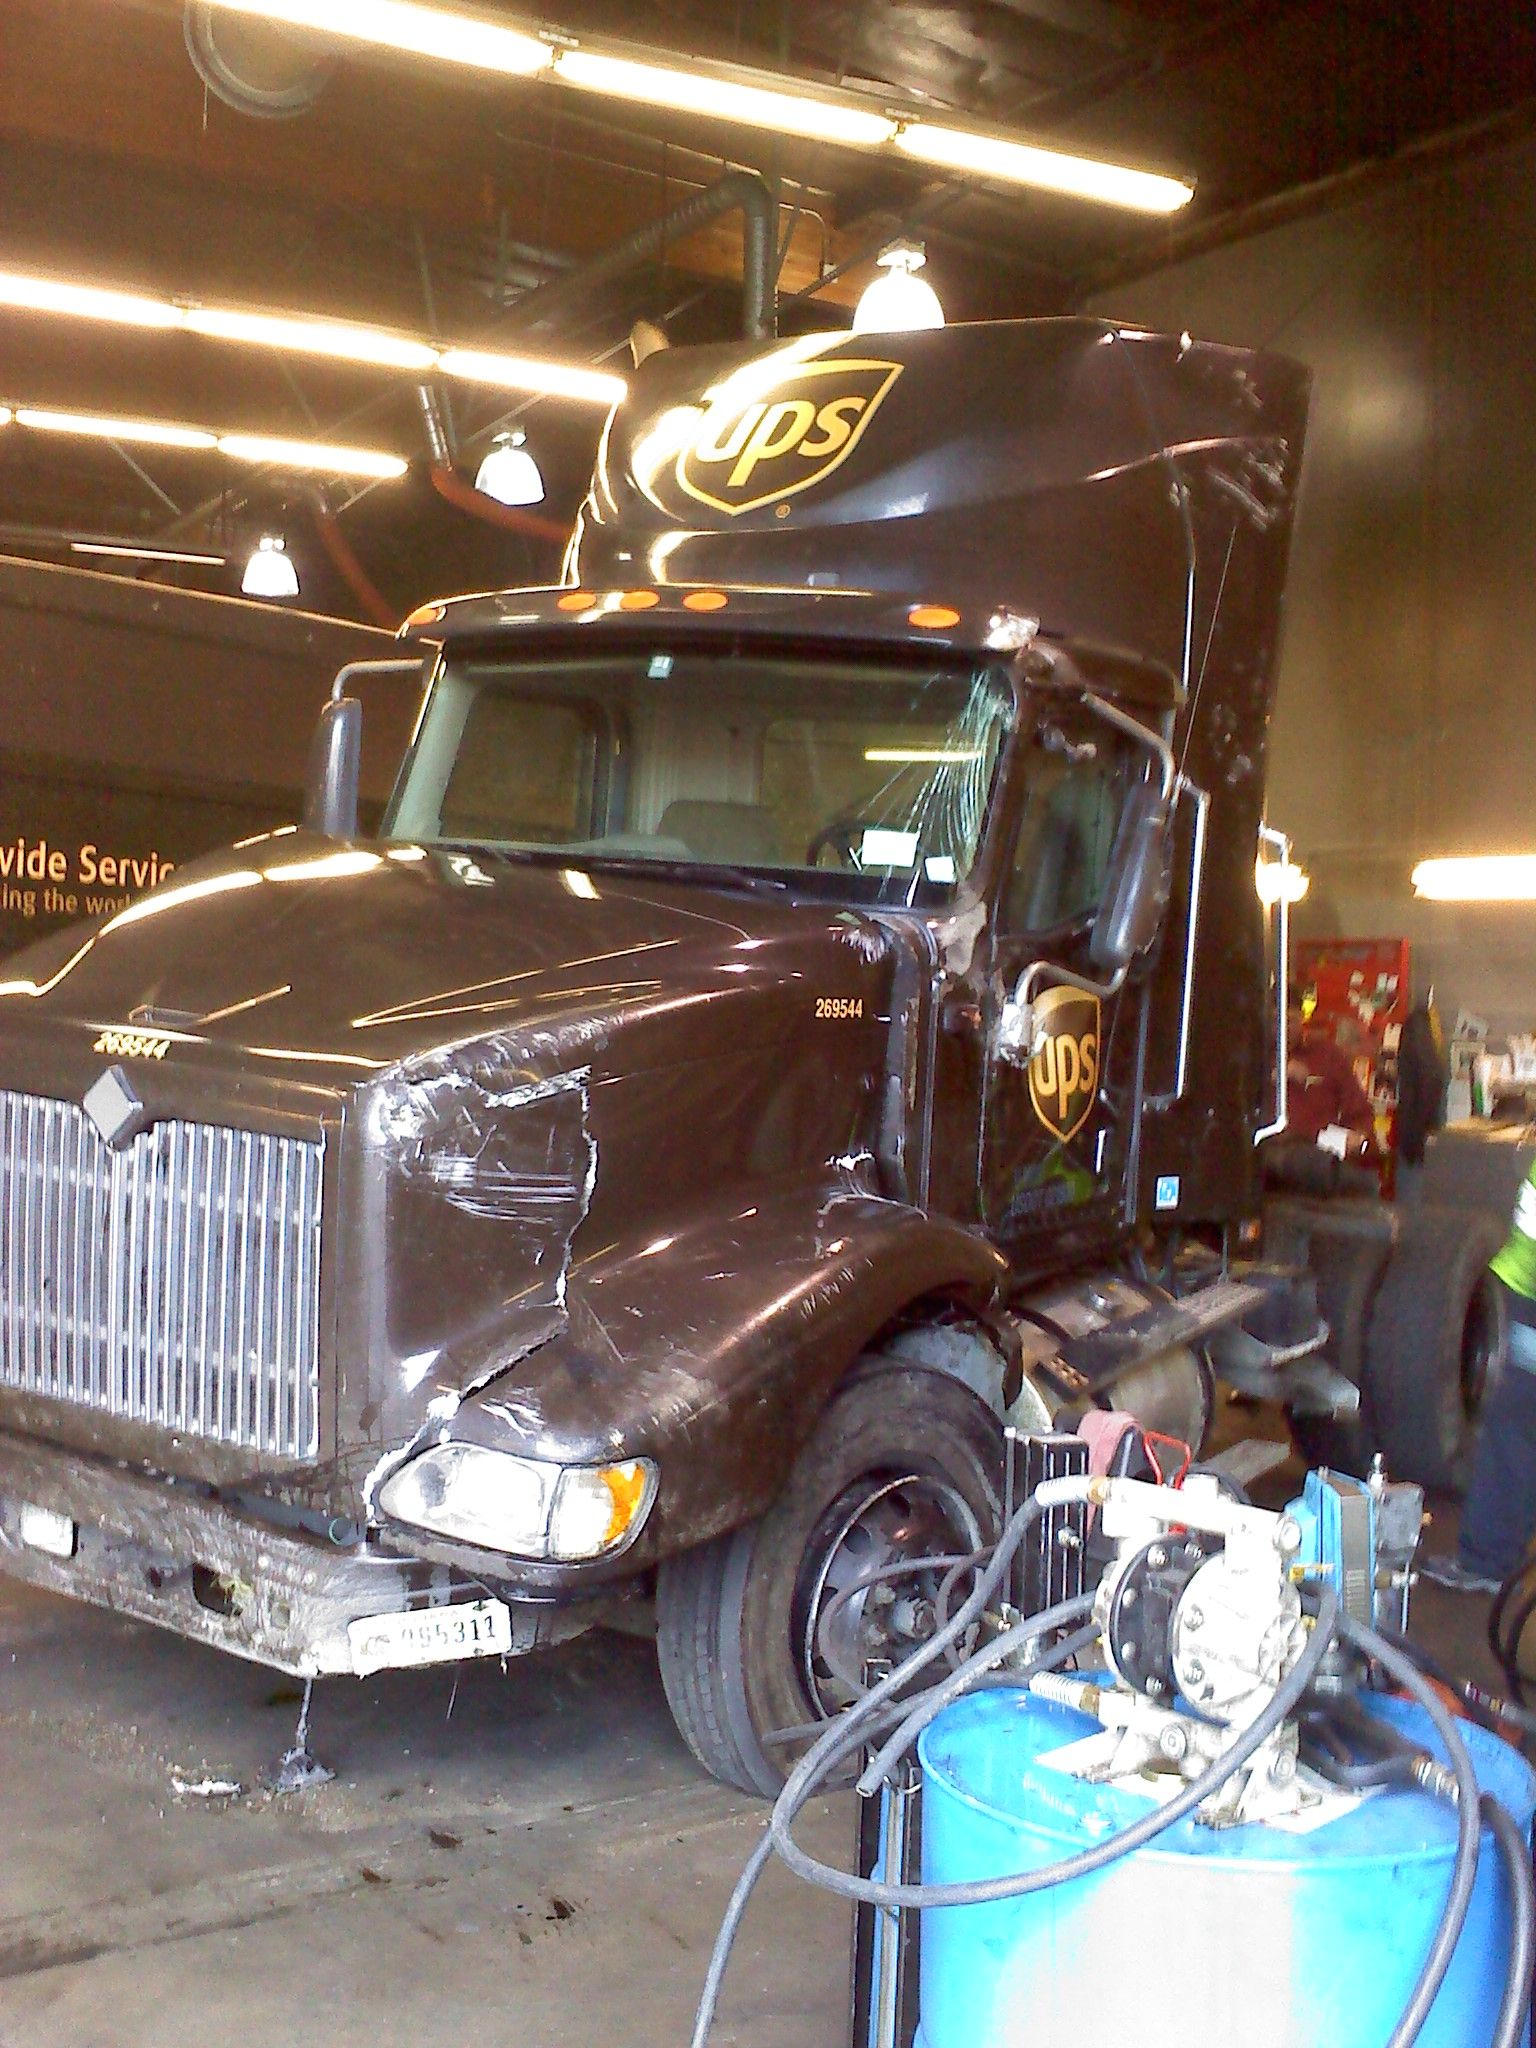 Pin by Shelley Chandler on Ups (With images) Truck